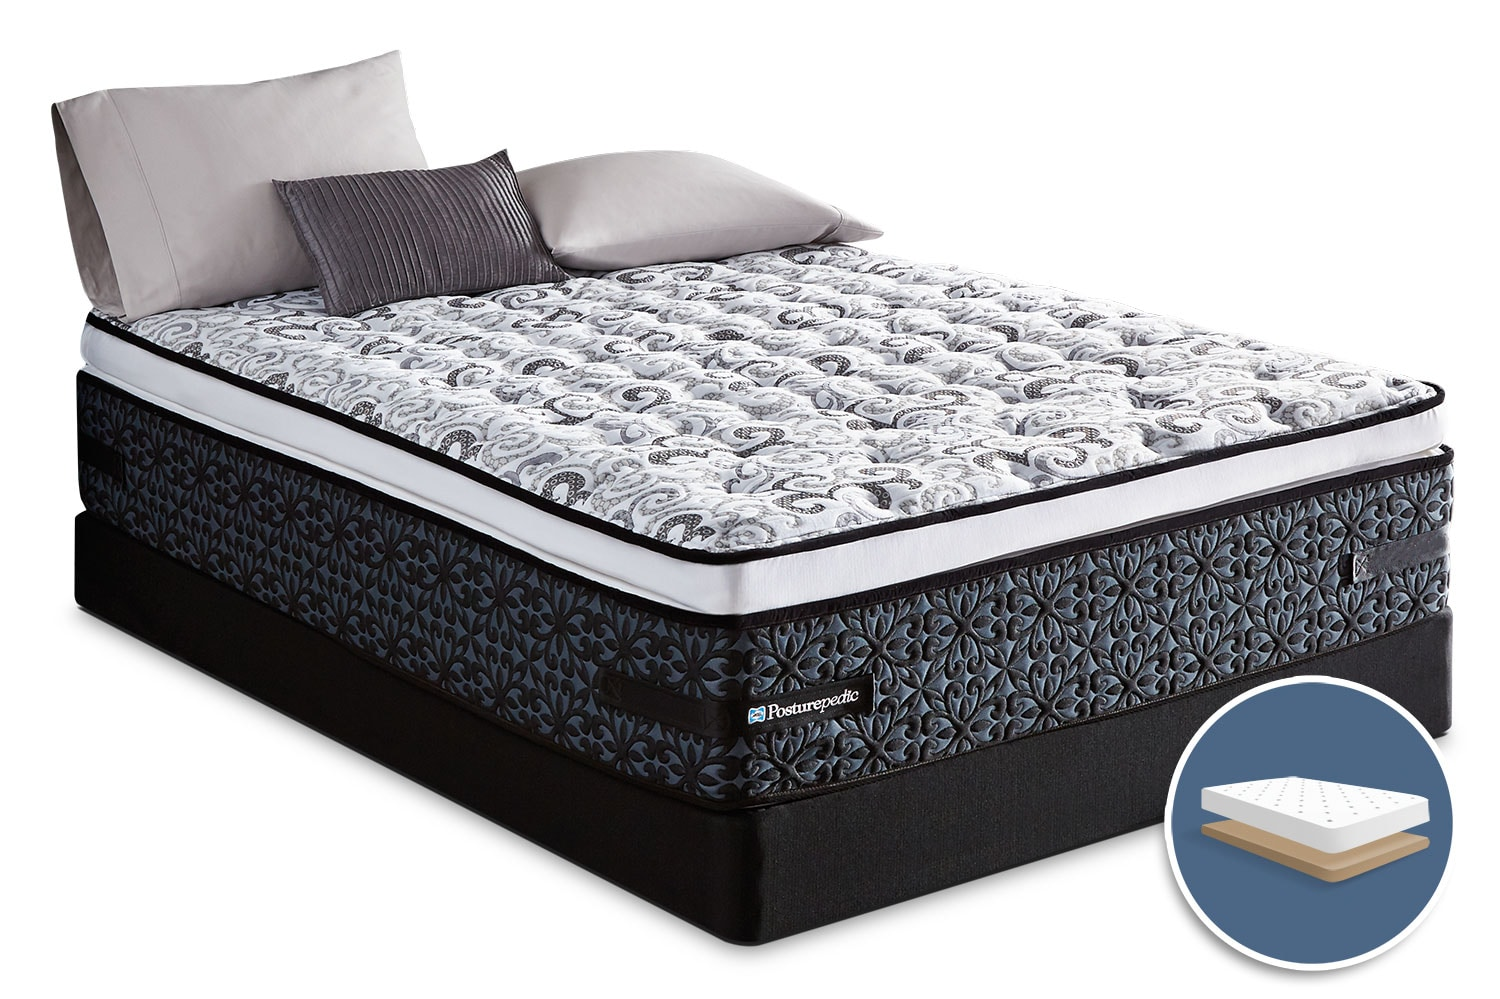 Mattresses and Bedding - Sealy Crown Jewel Luxe Summer Crest Euro Pillow-Top Low-Profile Full Mattress Set